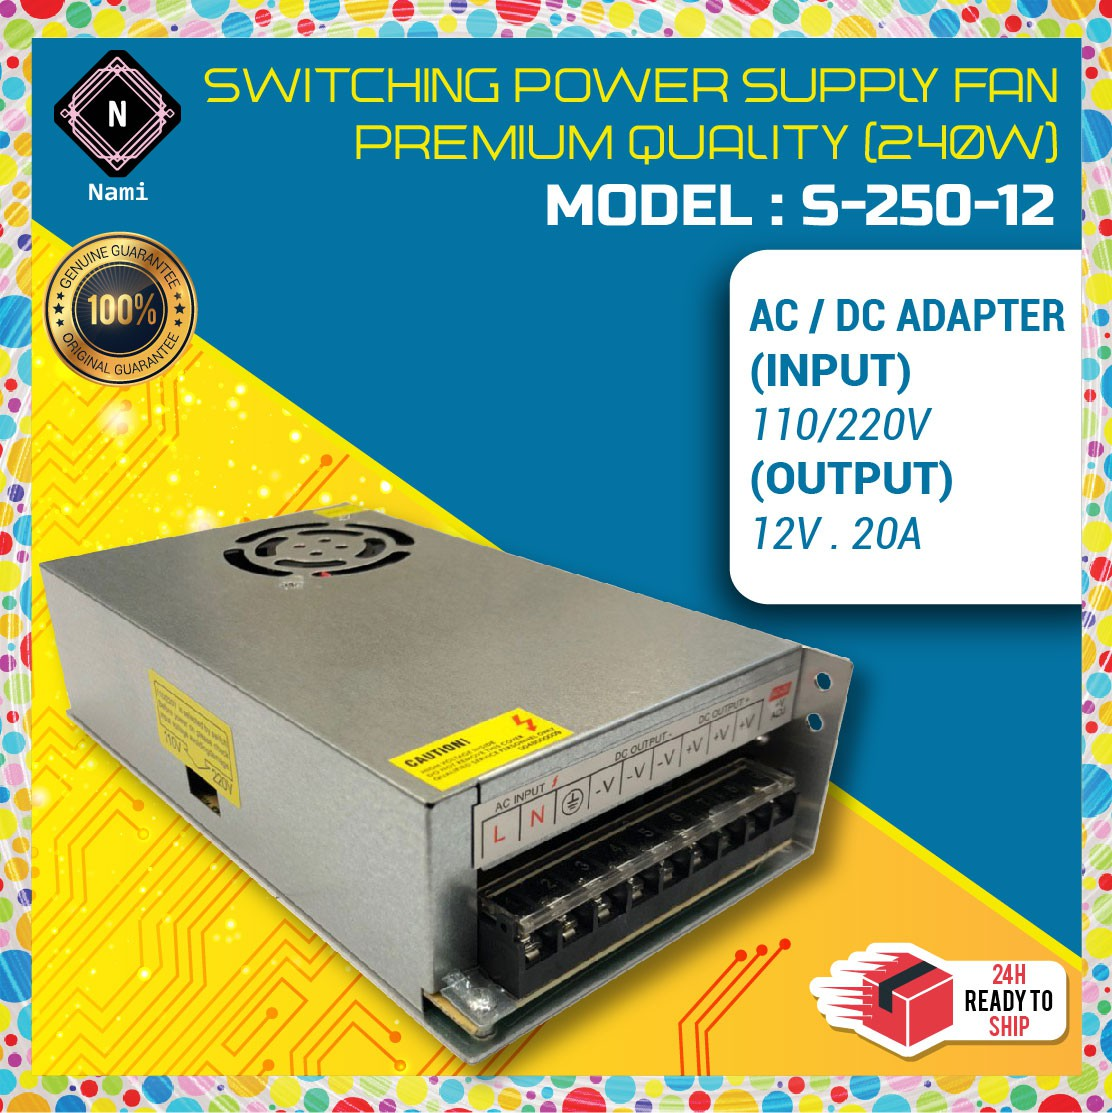 12V 20A Switching Power Supply 250W Premium Quality